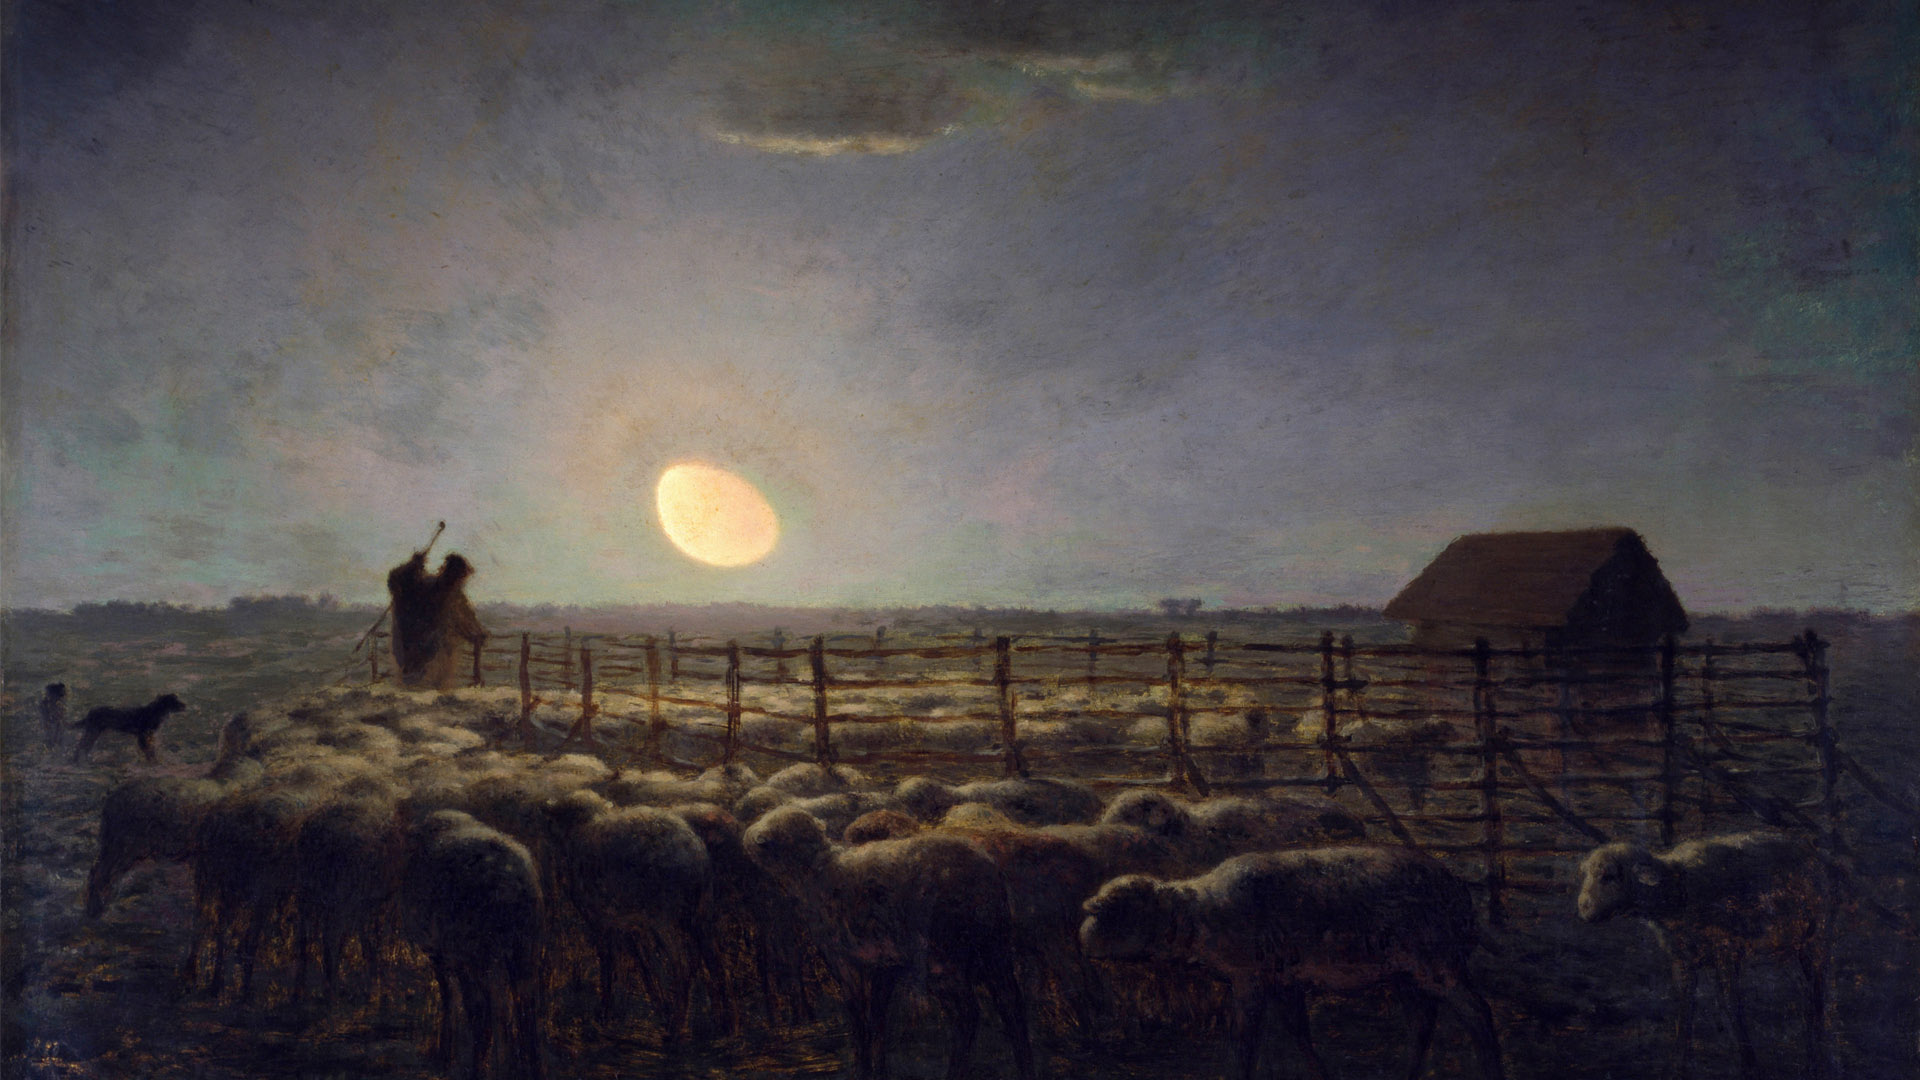 Jean-François Millet - The Sheepfold Moonlight 1920x1080